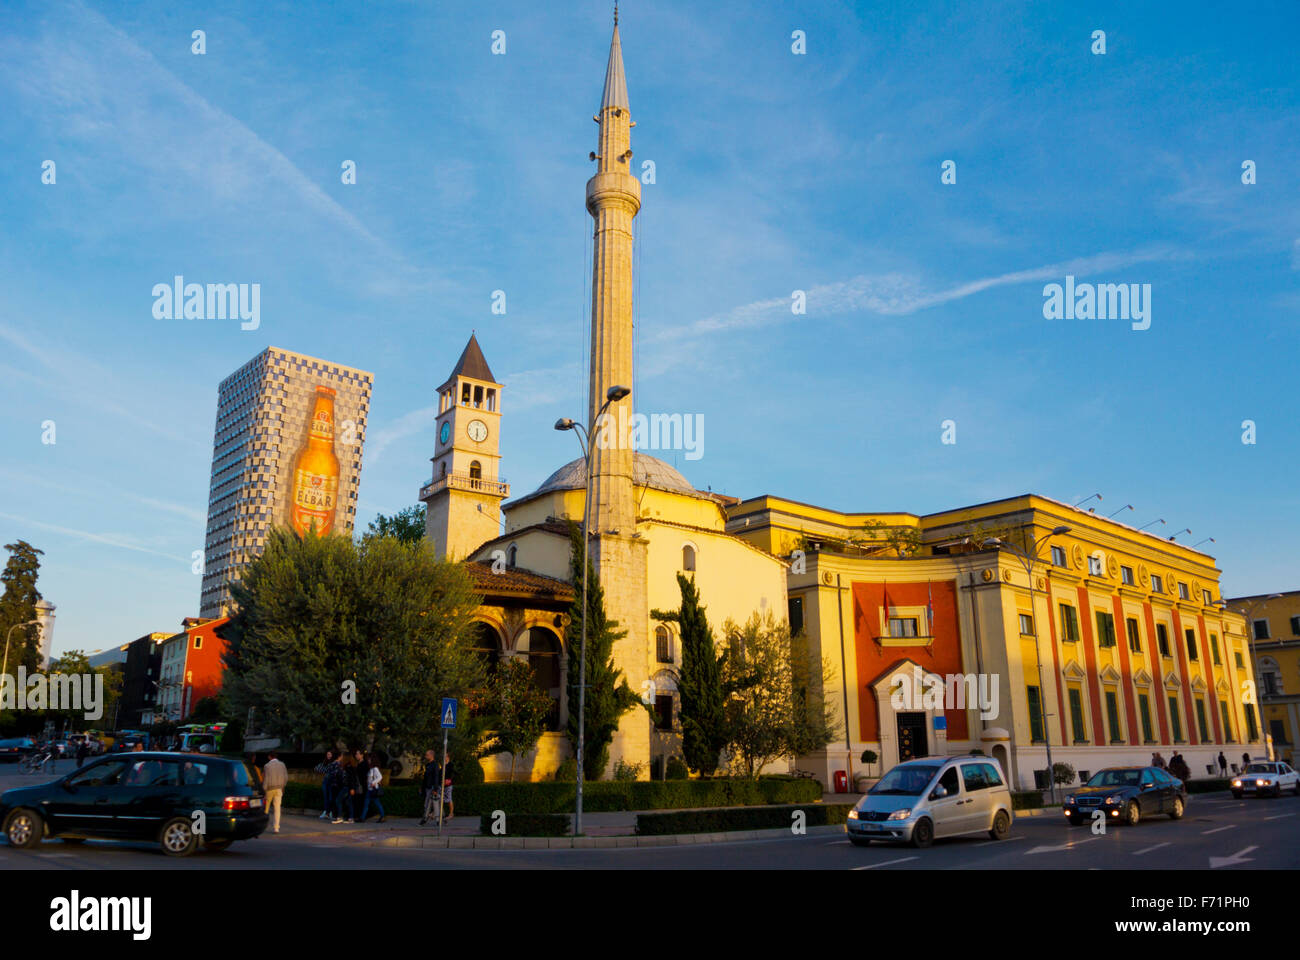 Xhamia e Et'hem Beut mosque, town hall, and clock tower, Sheshi Skenderbej,Skanderbeg square, Tirana, Albania - Stock Image